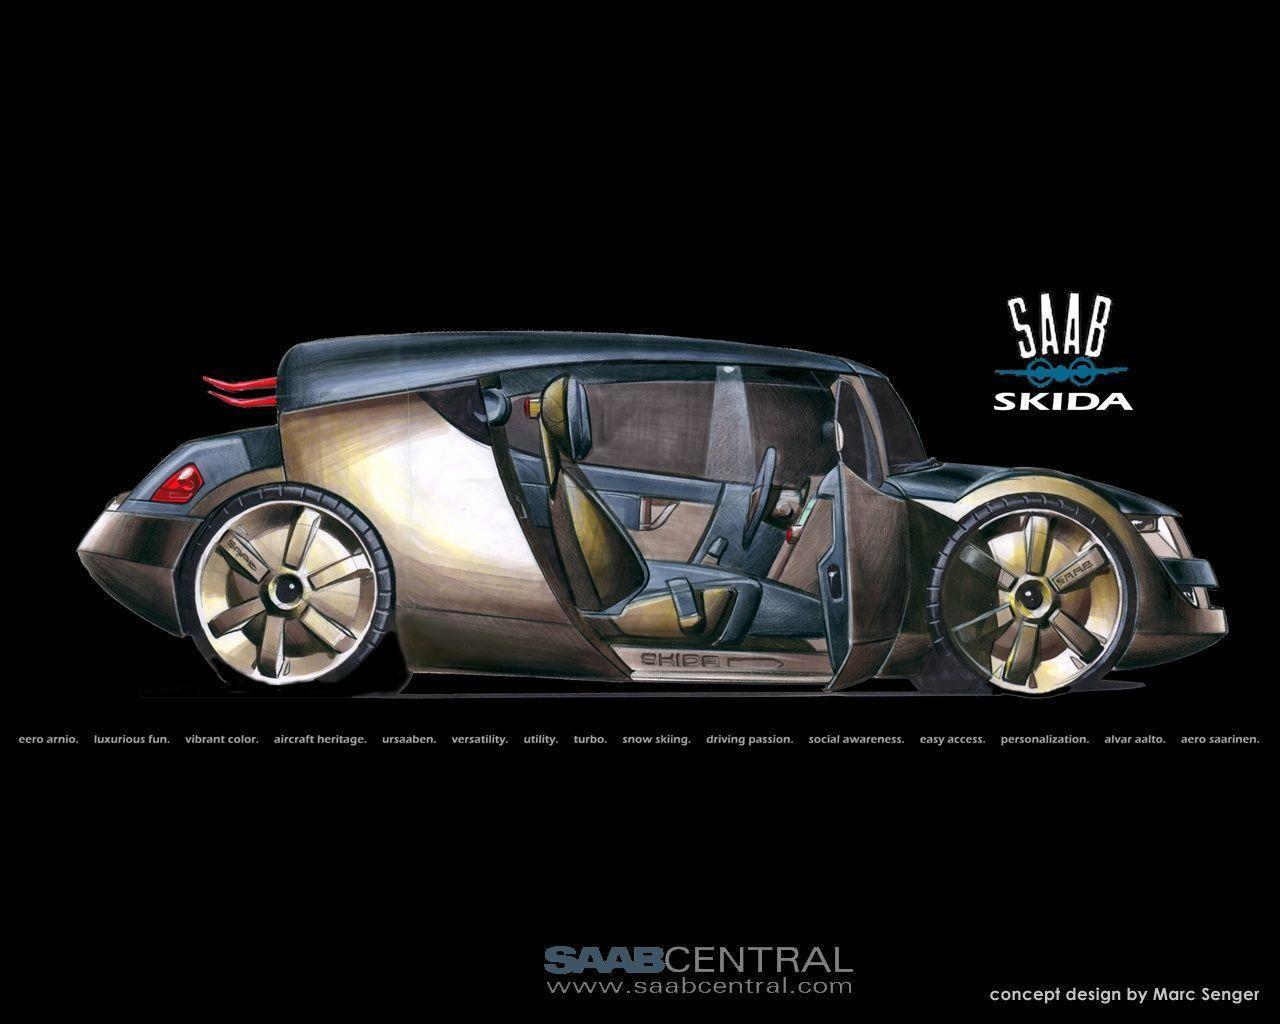 Saab Wallpaper Downloads : SaabCentral